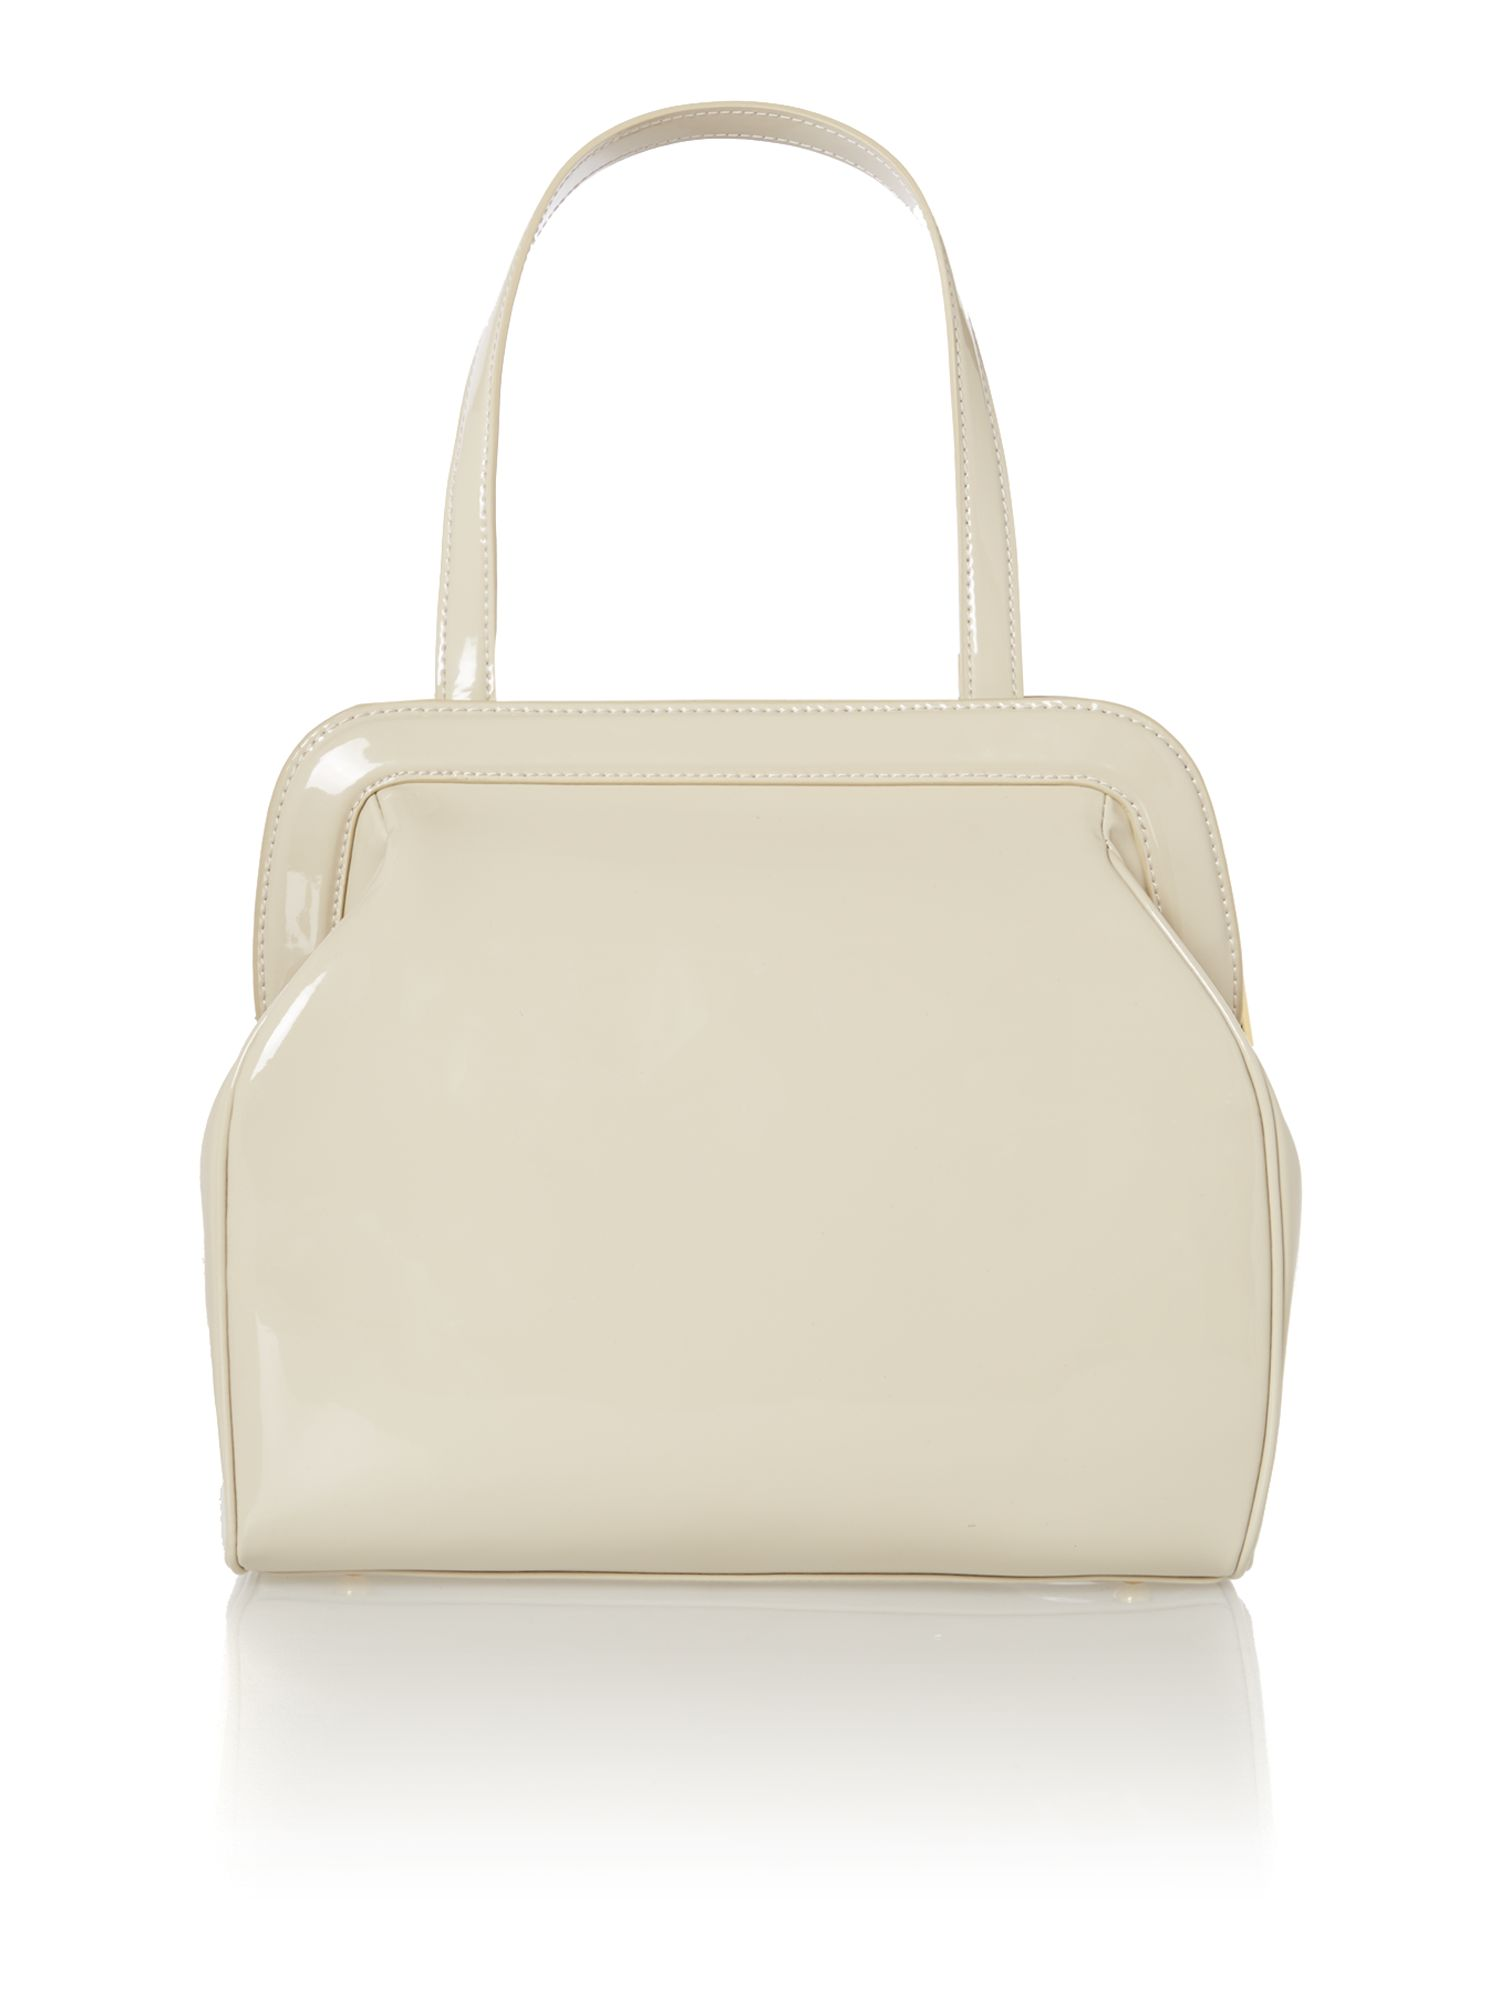 Paula patent neutral large shoulder bag